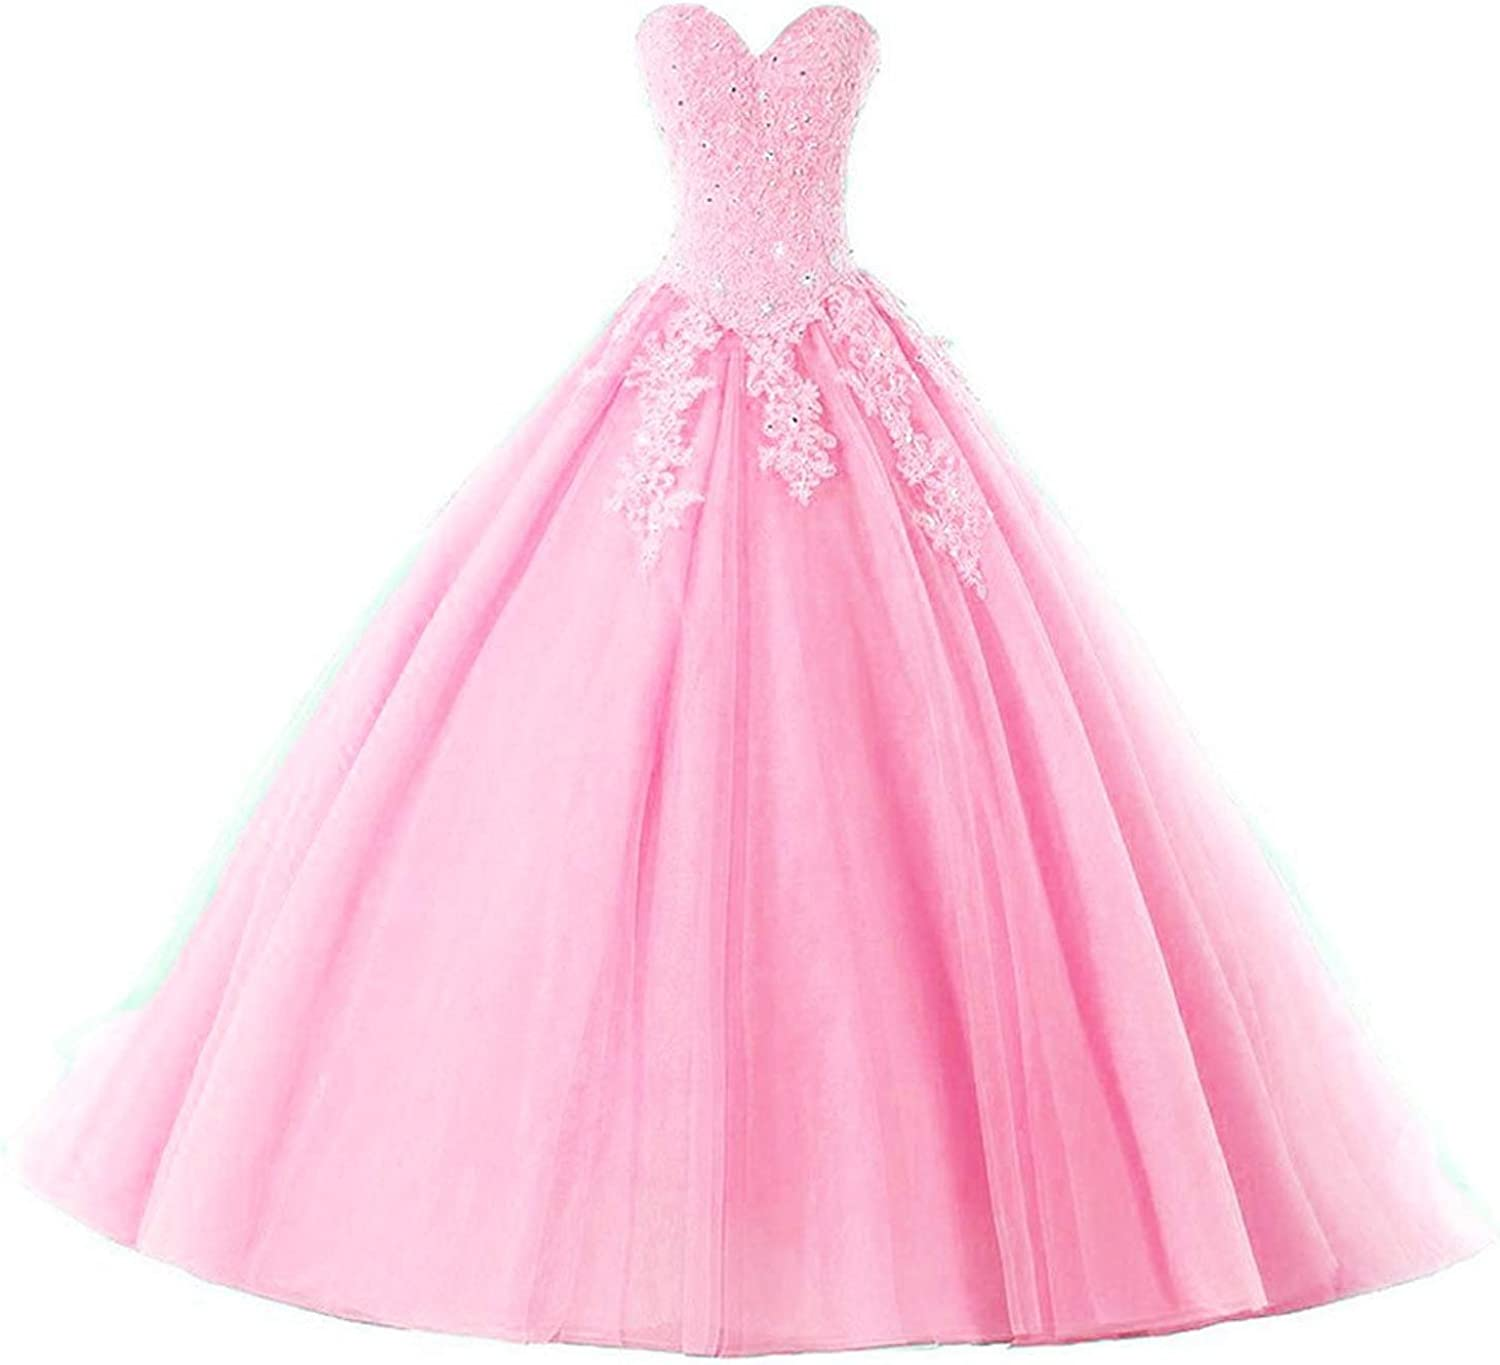 20KyleBird Women's Strapless Beaded Sequins Prom Dresses Sweet 16 Sweetheart Lace Appliques Tulle Quinceanera Ball Gowns